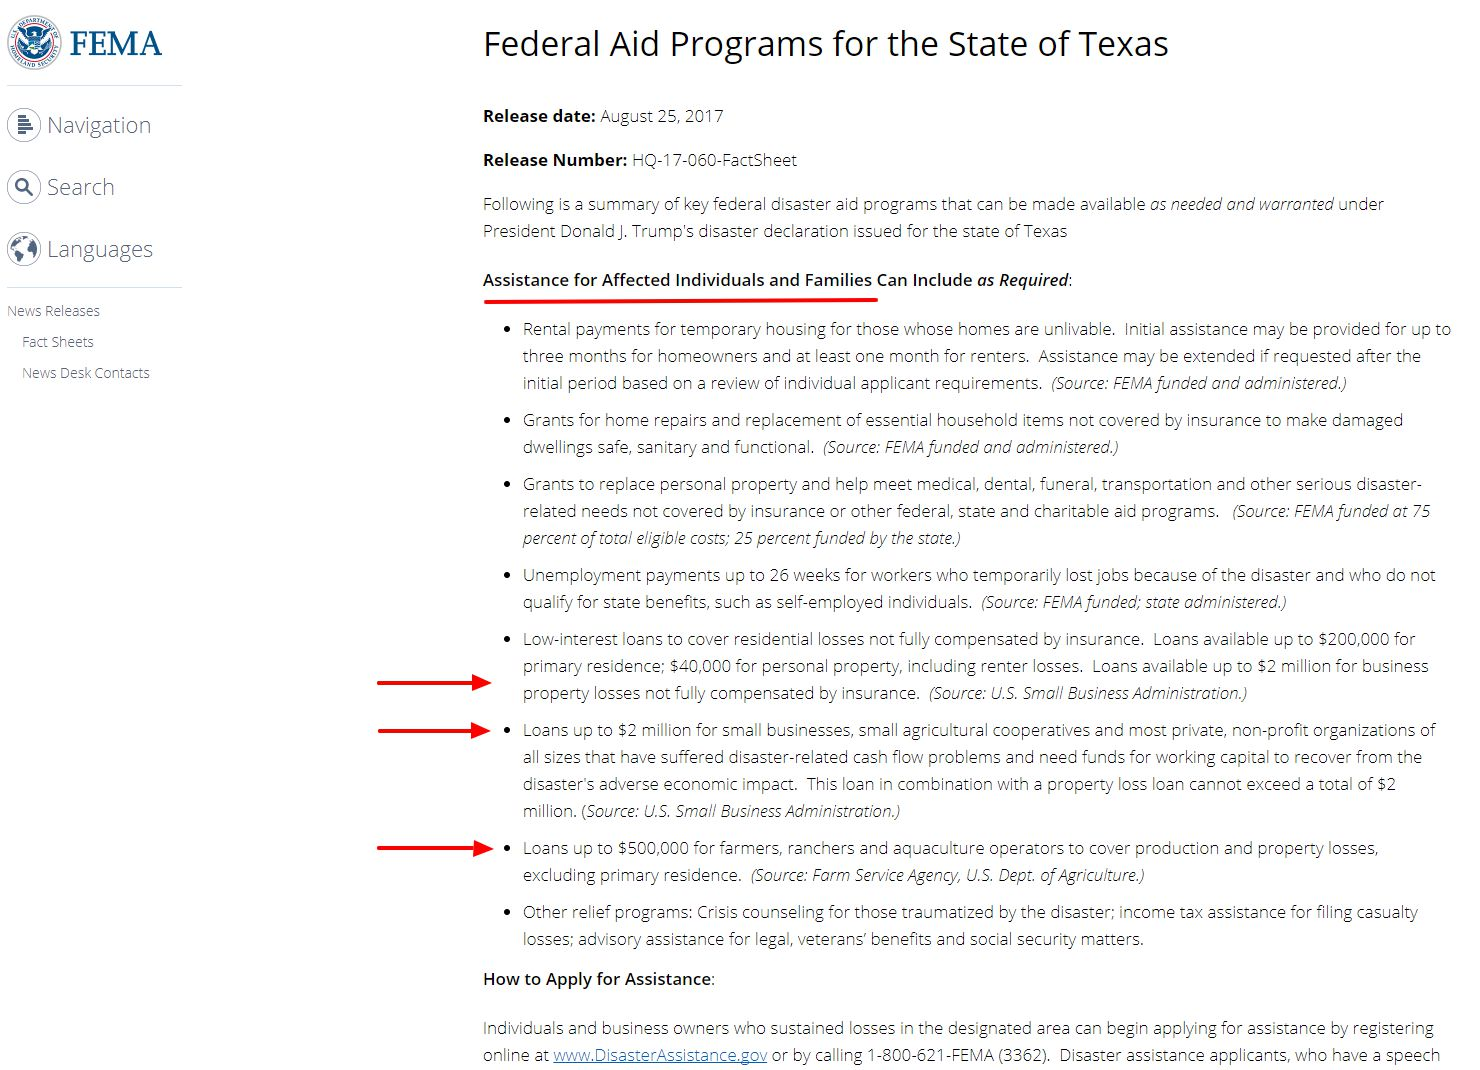 FEMA web page about Hurricane Harvey federal programs